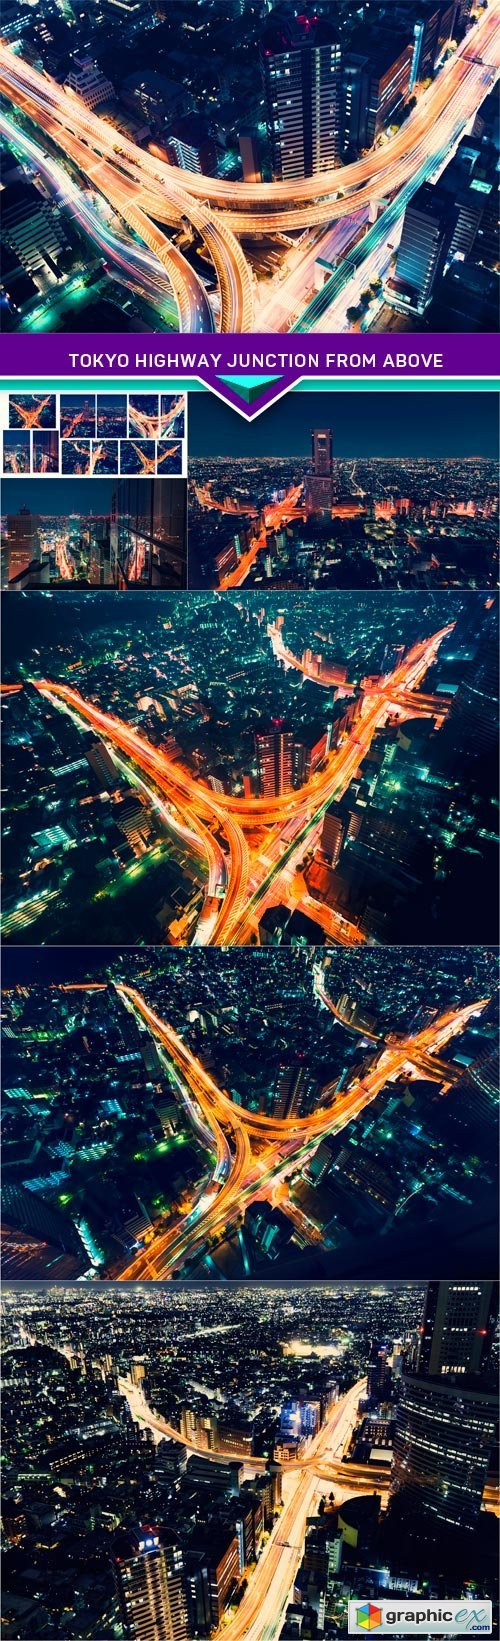 Tokyo highway junction from above 7X JPEG